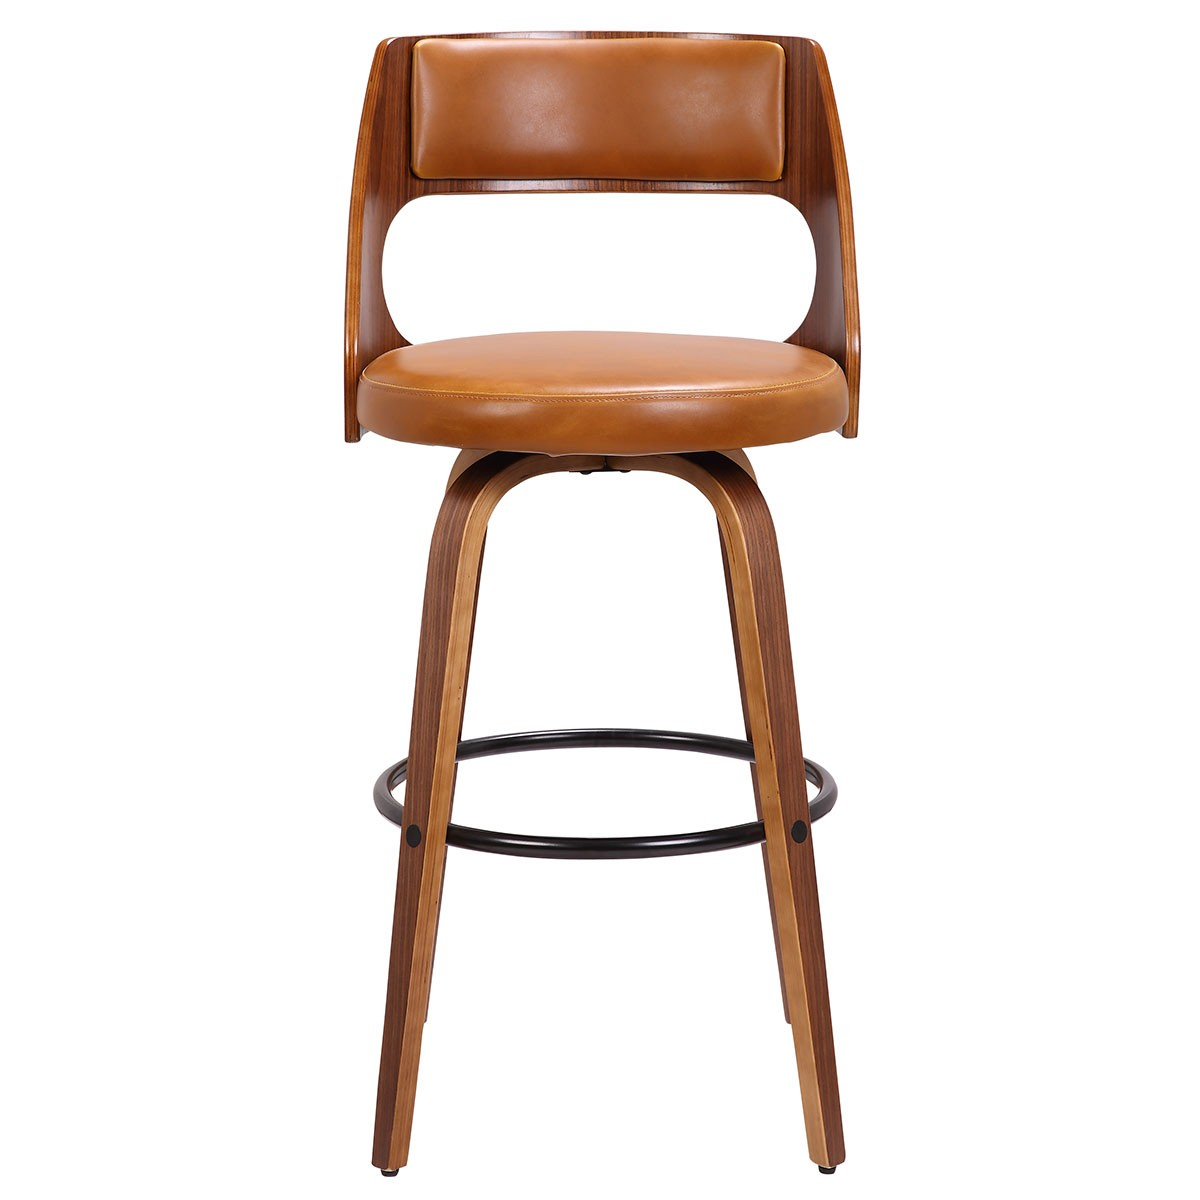 Set of 2 Oslo Commercial Grade Bentwood Bar Chairs with Faux Leather Swivel Seat, Tan / Walnut